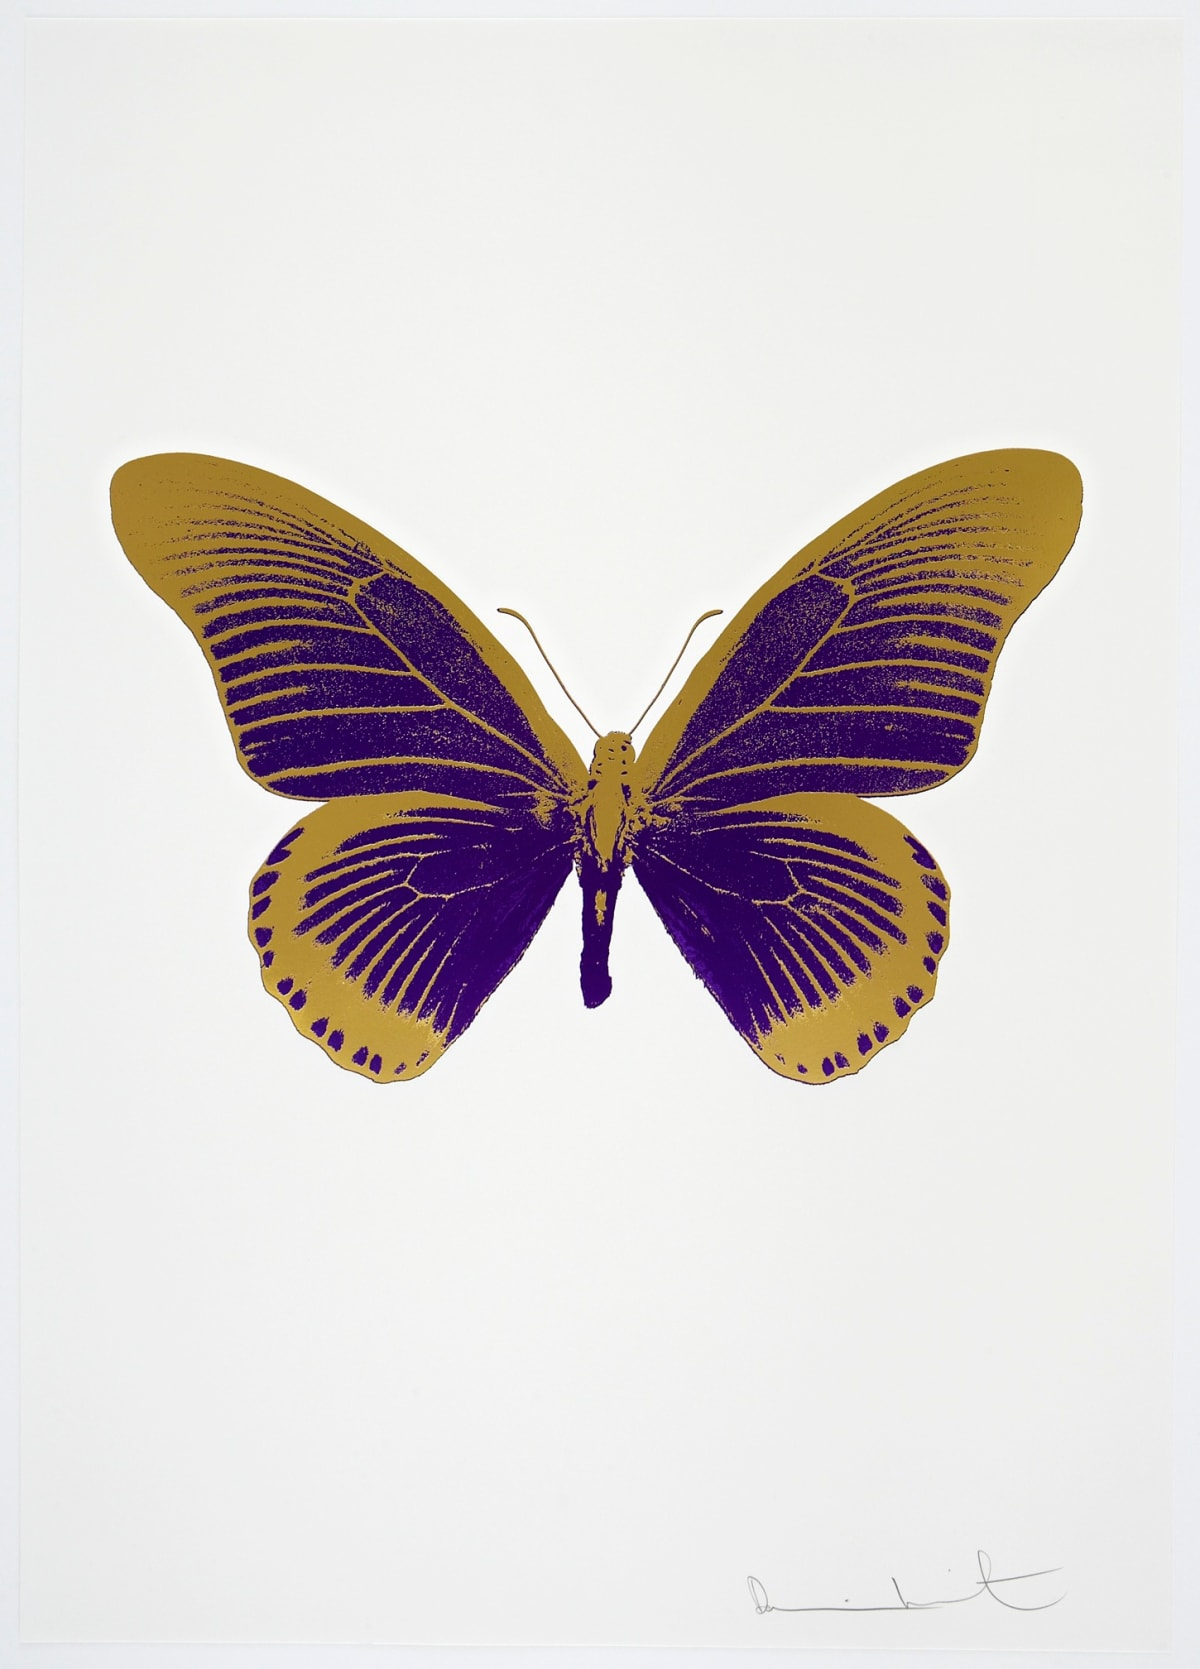 Damien Hirst The Souls IV - Imperial Purple/Oriental Gold Damien Hirst butterfly foil print for sale Damien Hirst print for sale , 2010 2 colour foil block on 300gsm Arches 88 archival paper. Signed and numbered. Published by Paul Stolper and Other Criteria 72 x 51cm OC8001 / 1418-24 Edition of 15